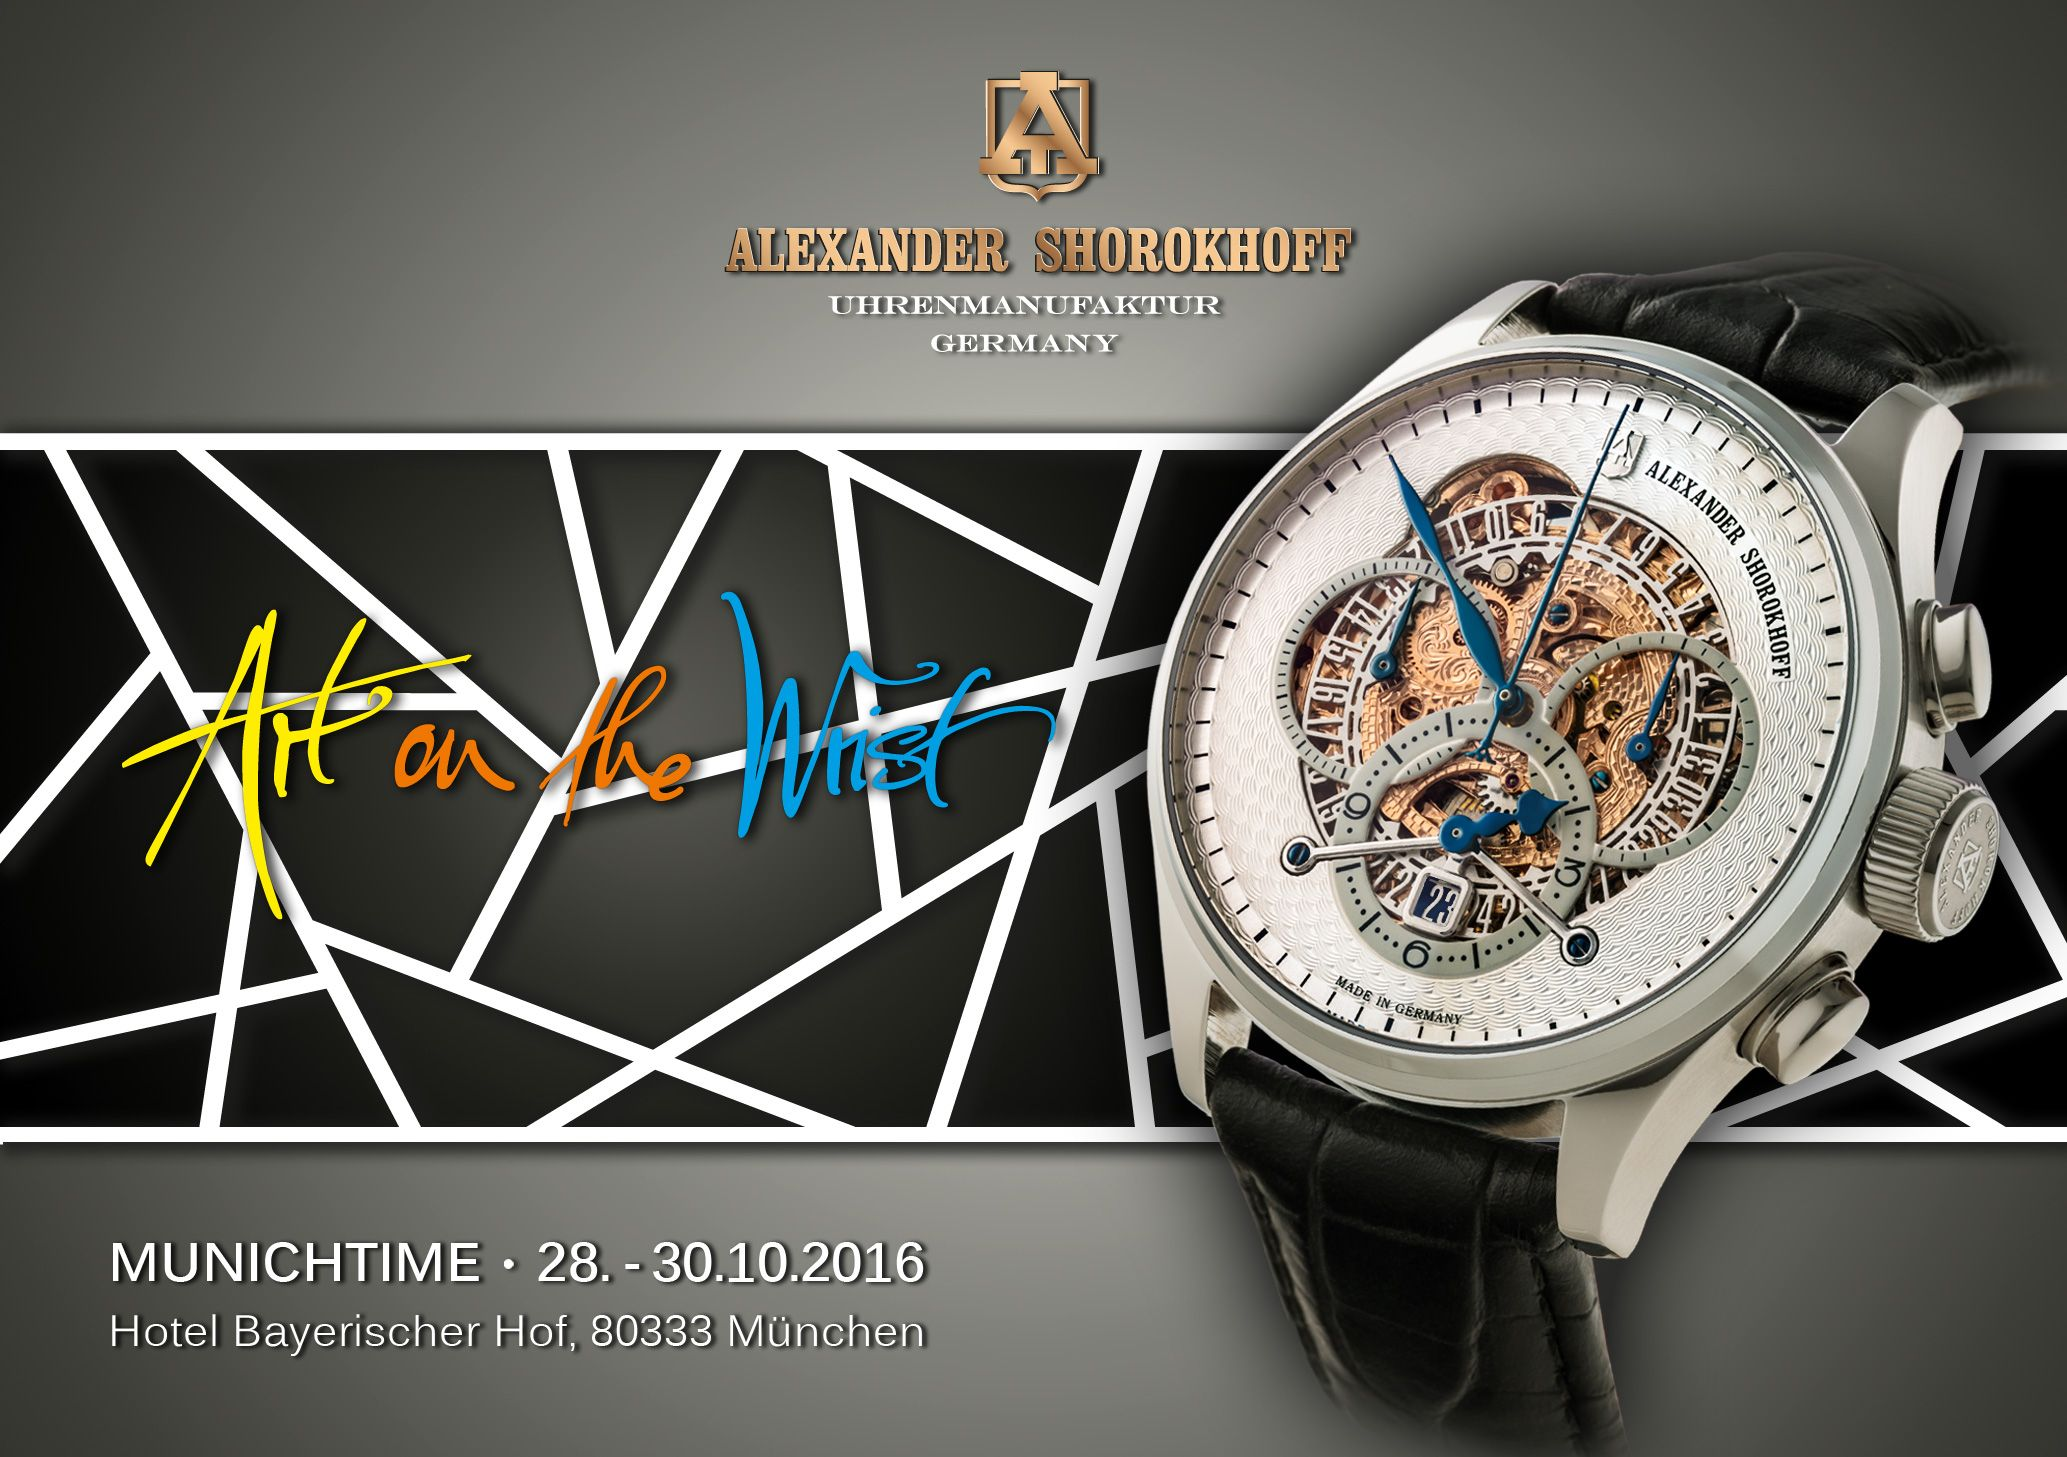 A must for every watch enthusiast! Don't miss to join us during the Munichtime 2016 watch fair in the hotel Bayerischer Hof. We are looking forward to welcome you! #alexandershorokhoff #artonthewrist #avantgarde #munichtime #munichtime2016 #hotelbayerischerhof #munich #fair #messe #uhr